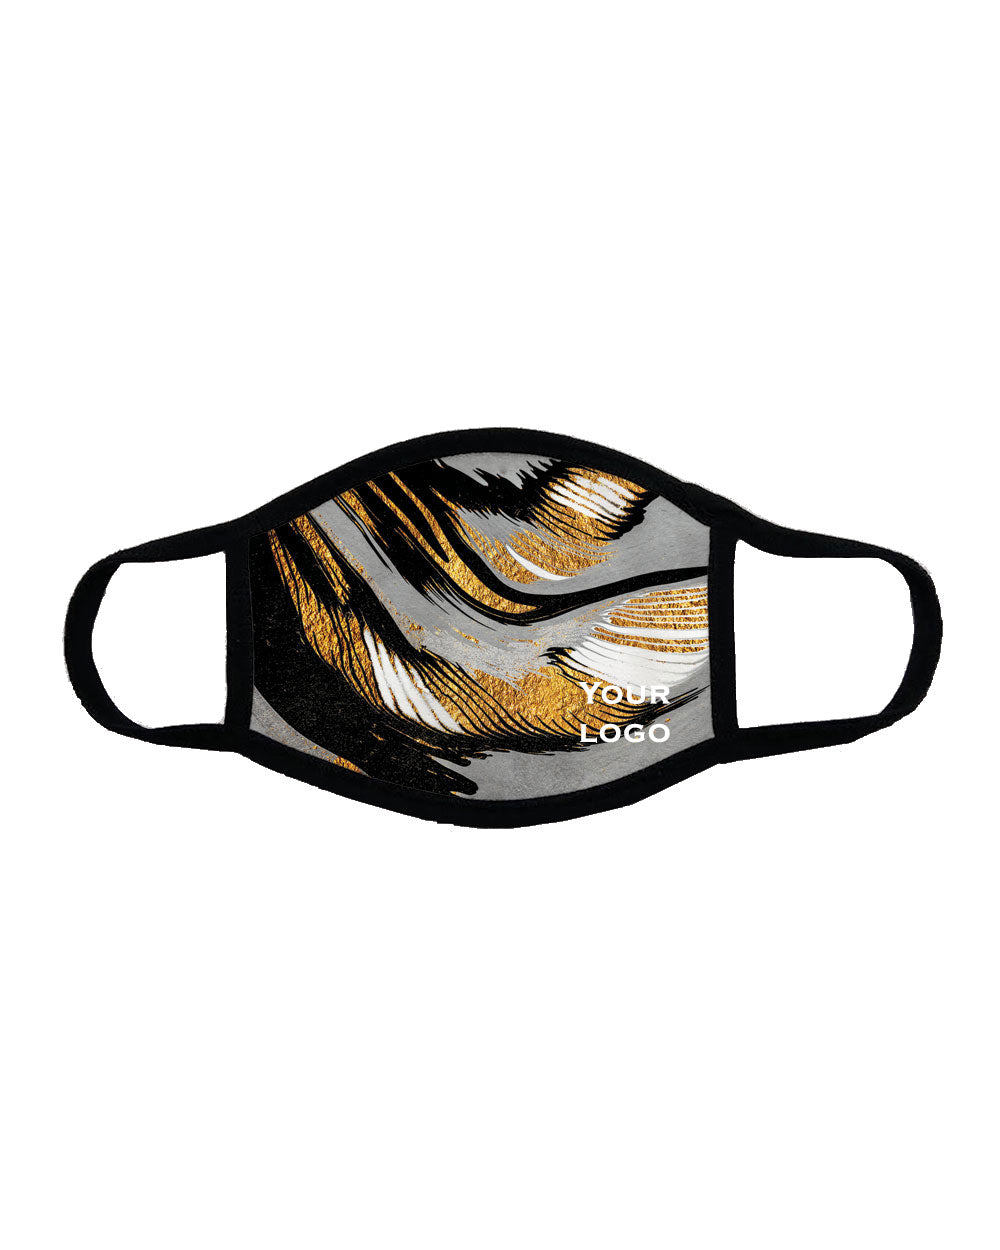 Golden Eagle Face Mask,Reusable, Washable, Breathable